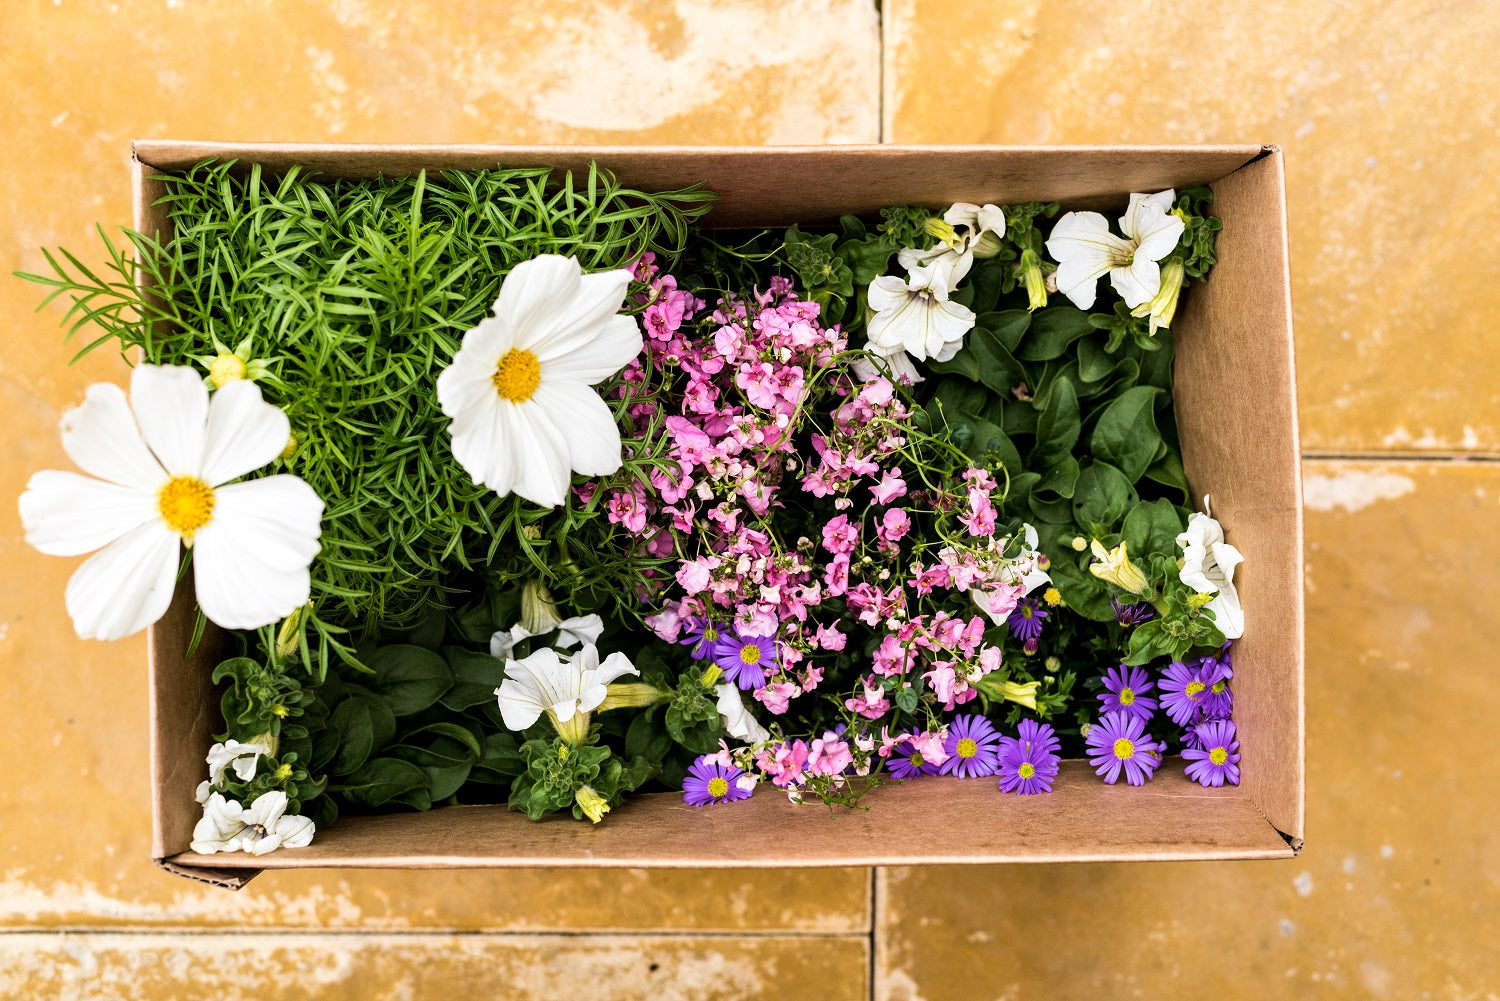 Lazy Flora garden in a box